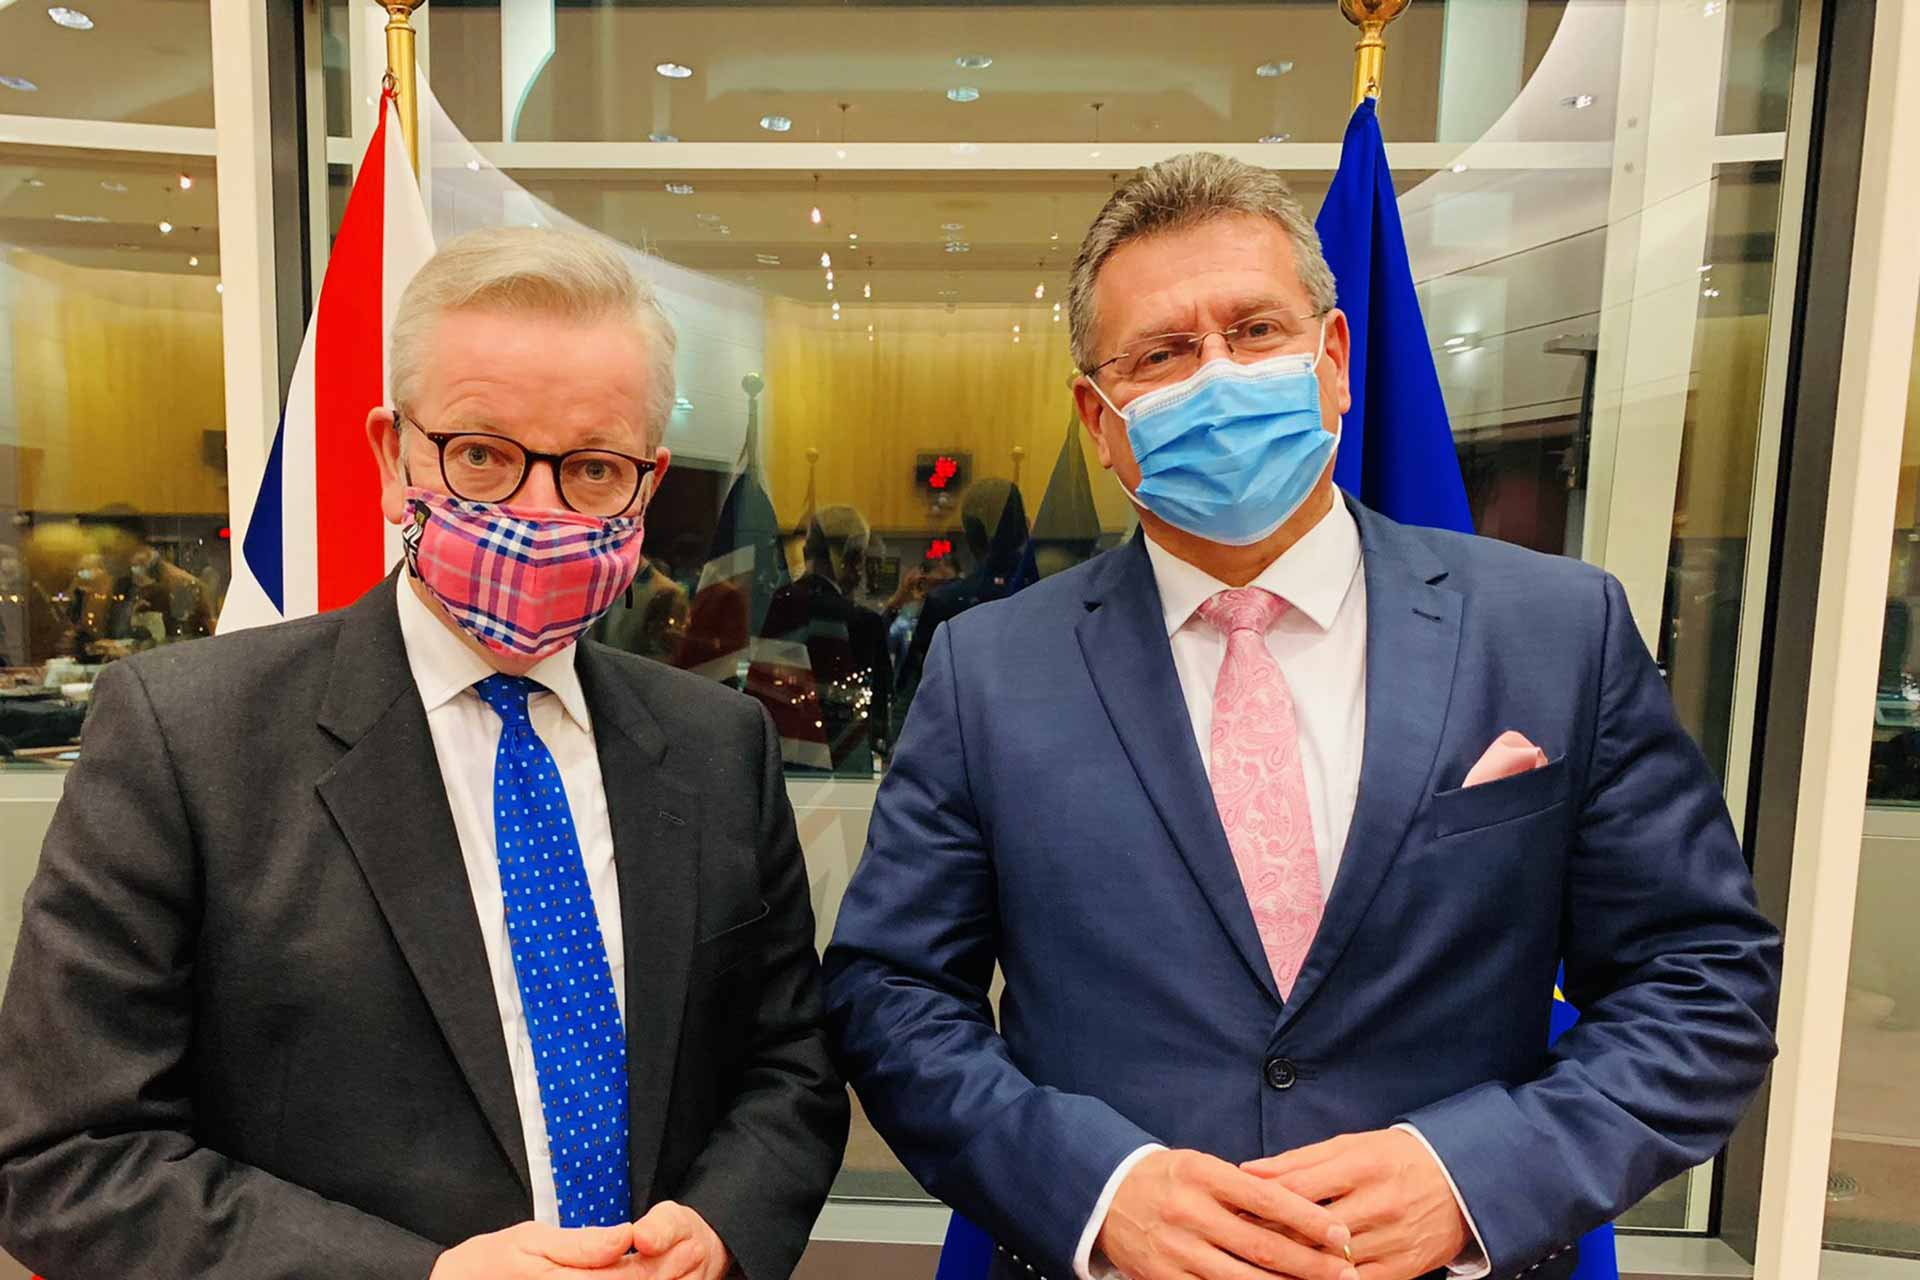 Maros Sefcovic and Michael Gove